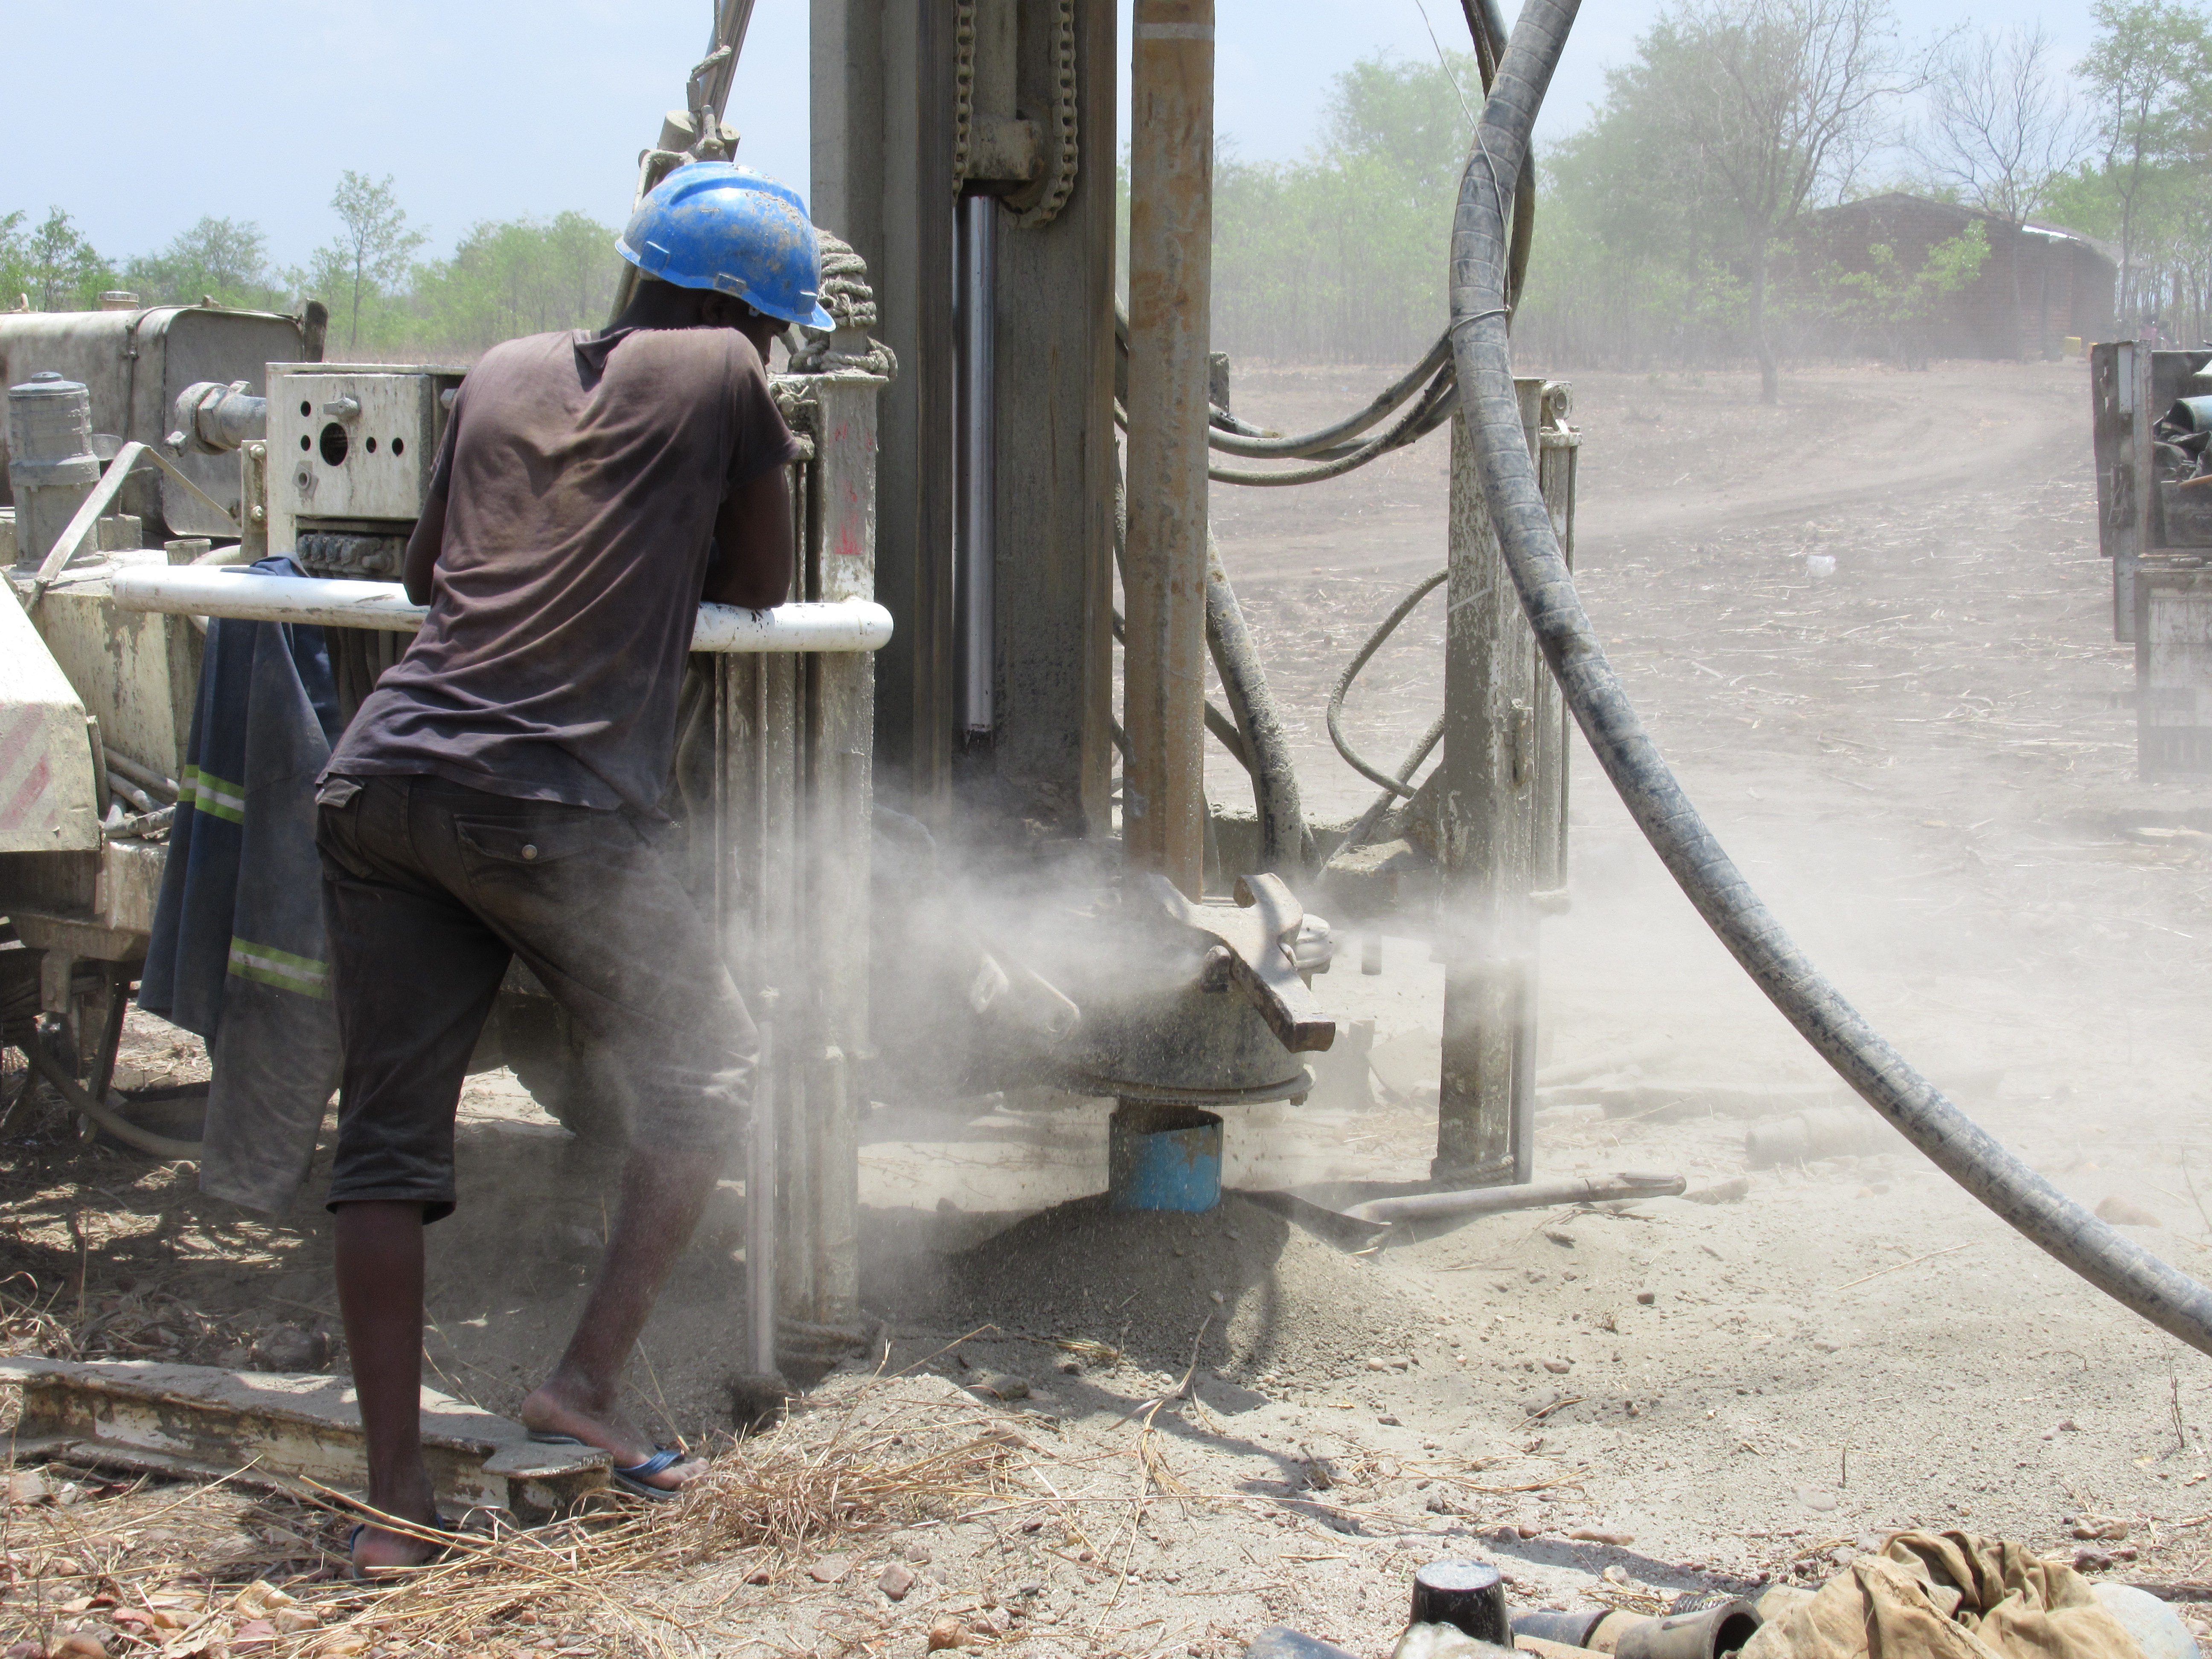 Drillers are contracted by an NGO to install new water points in a drought prone area of Balaka District, Malawi. Photo: Naomi Oates/ODI, 2018.